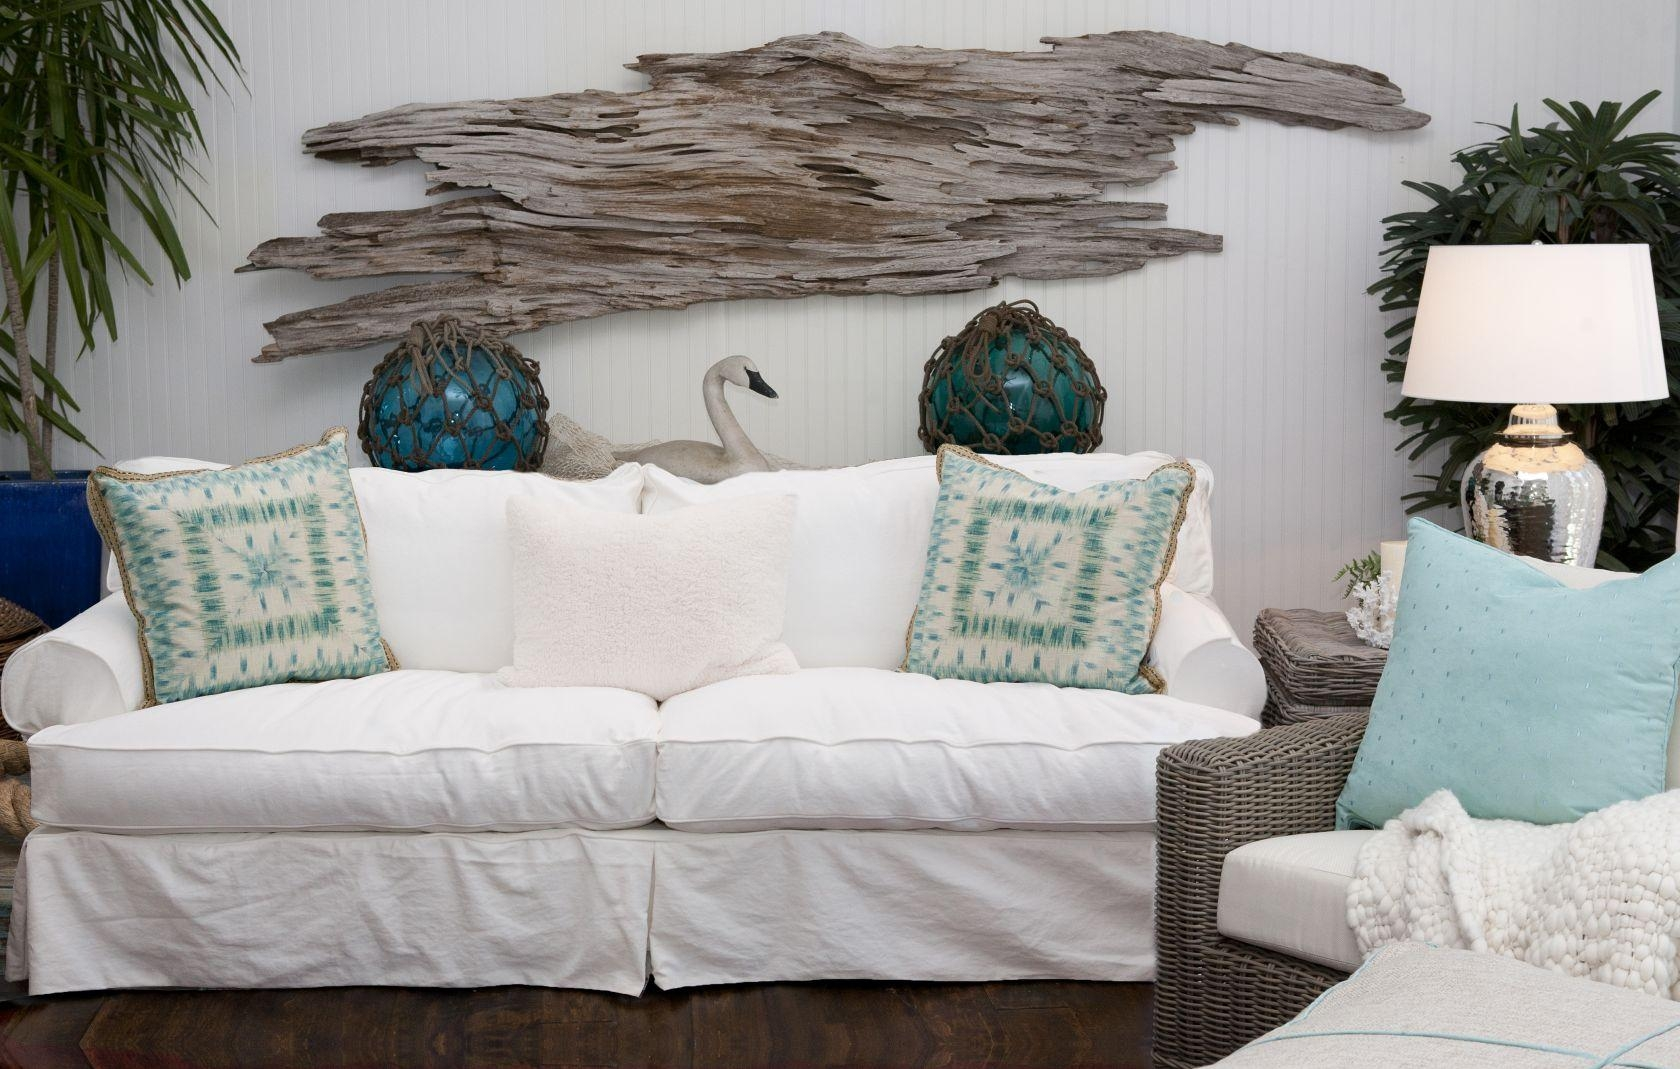 Driftwood with Driftwood Wall Art For Sale